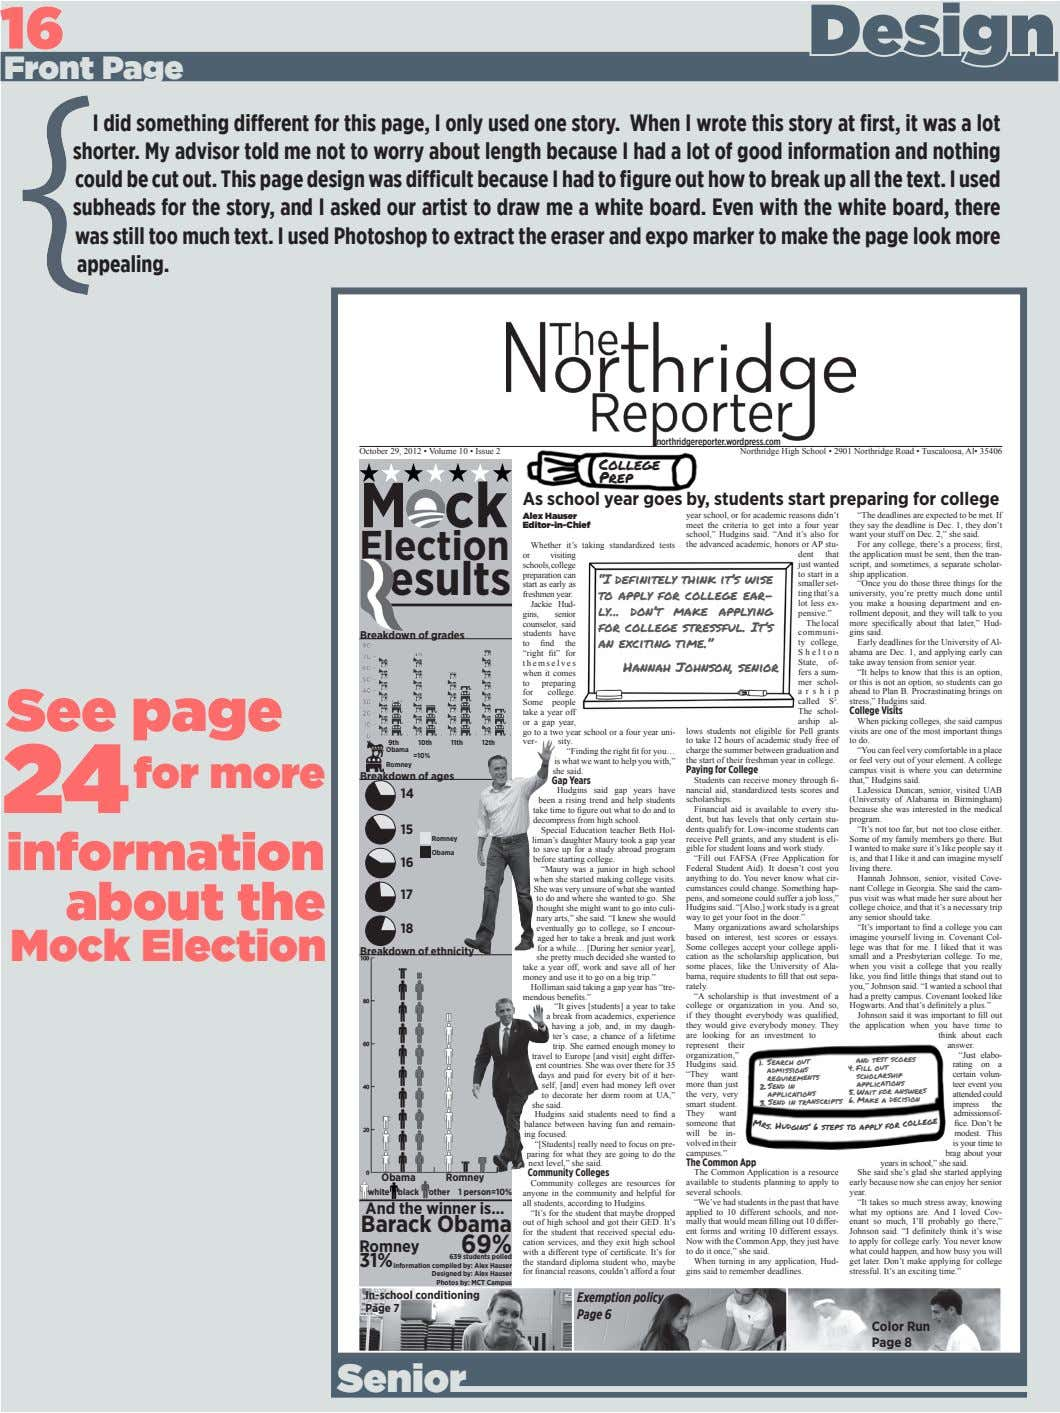 16 Design Front Page I did something different for this page, I only used one